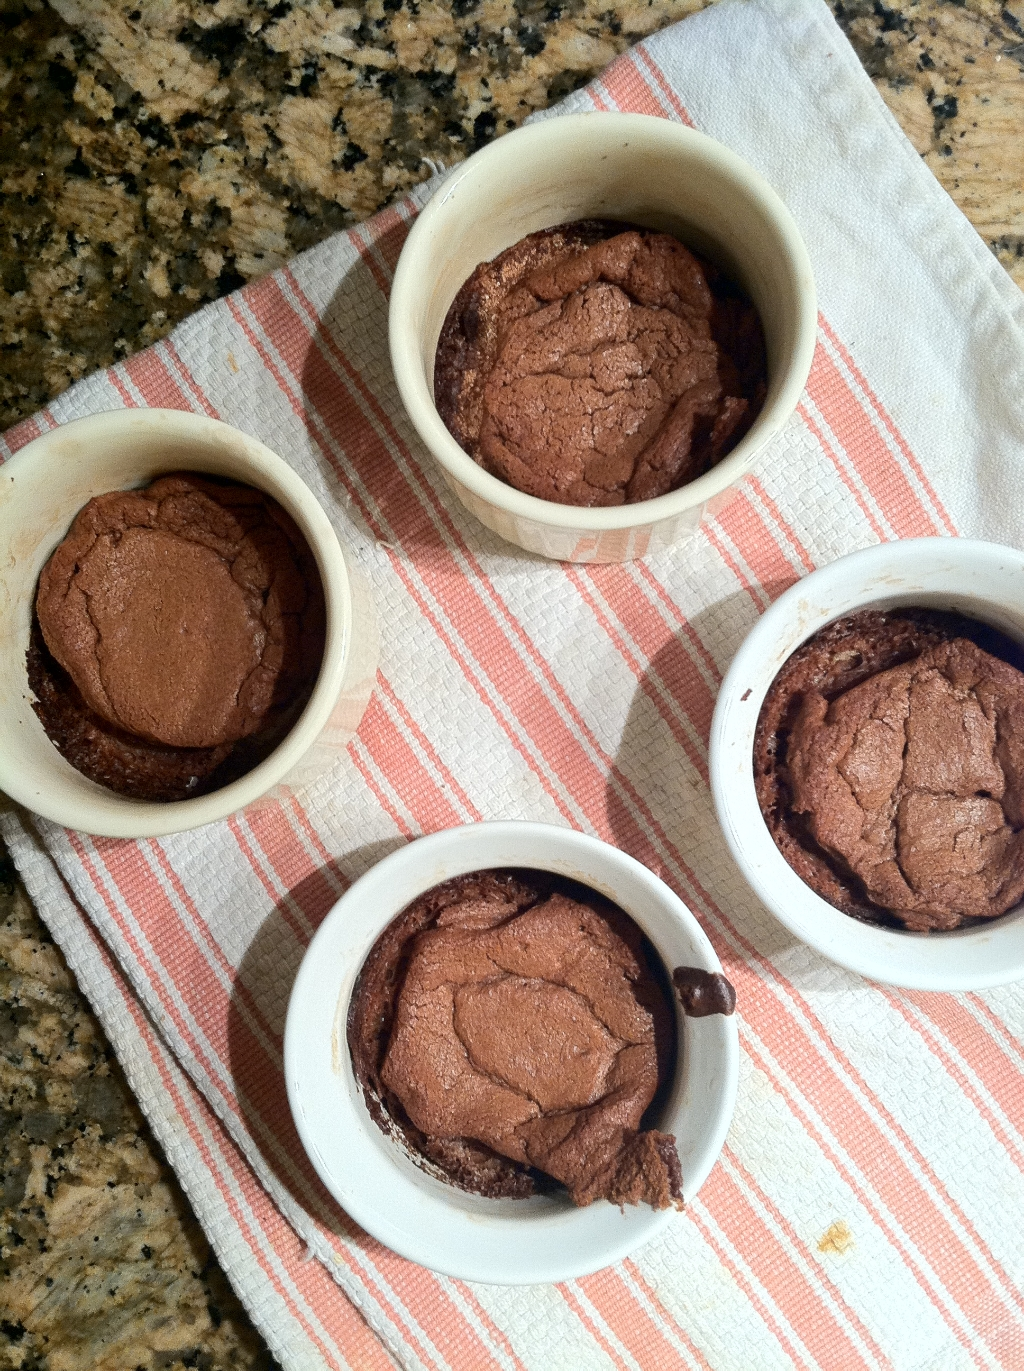 baking chocolate soufflé with friends